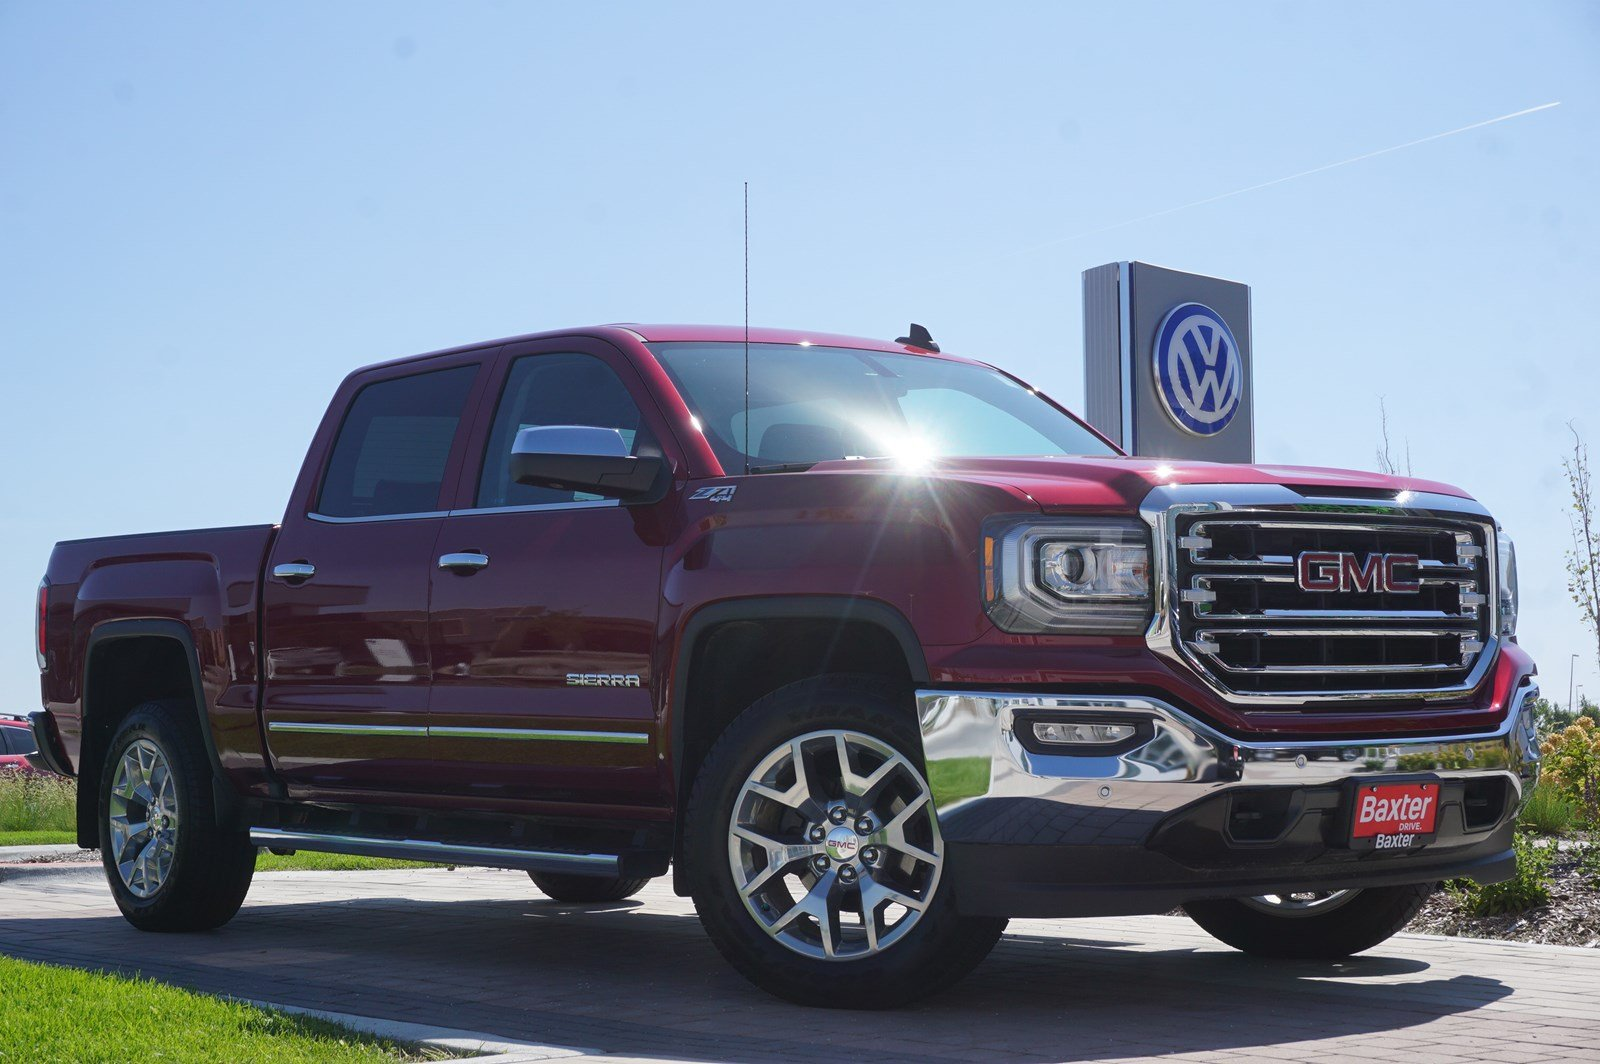 Pre-Owned 2018 GMC Sierra 1500 SLT - 4WD CREW CAB ONLY 1,710 MILES